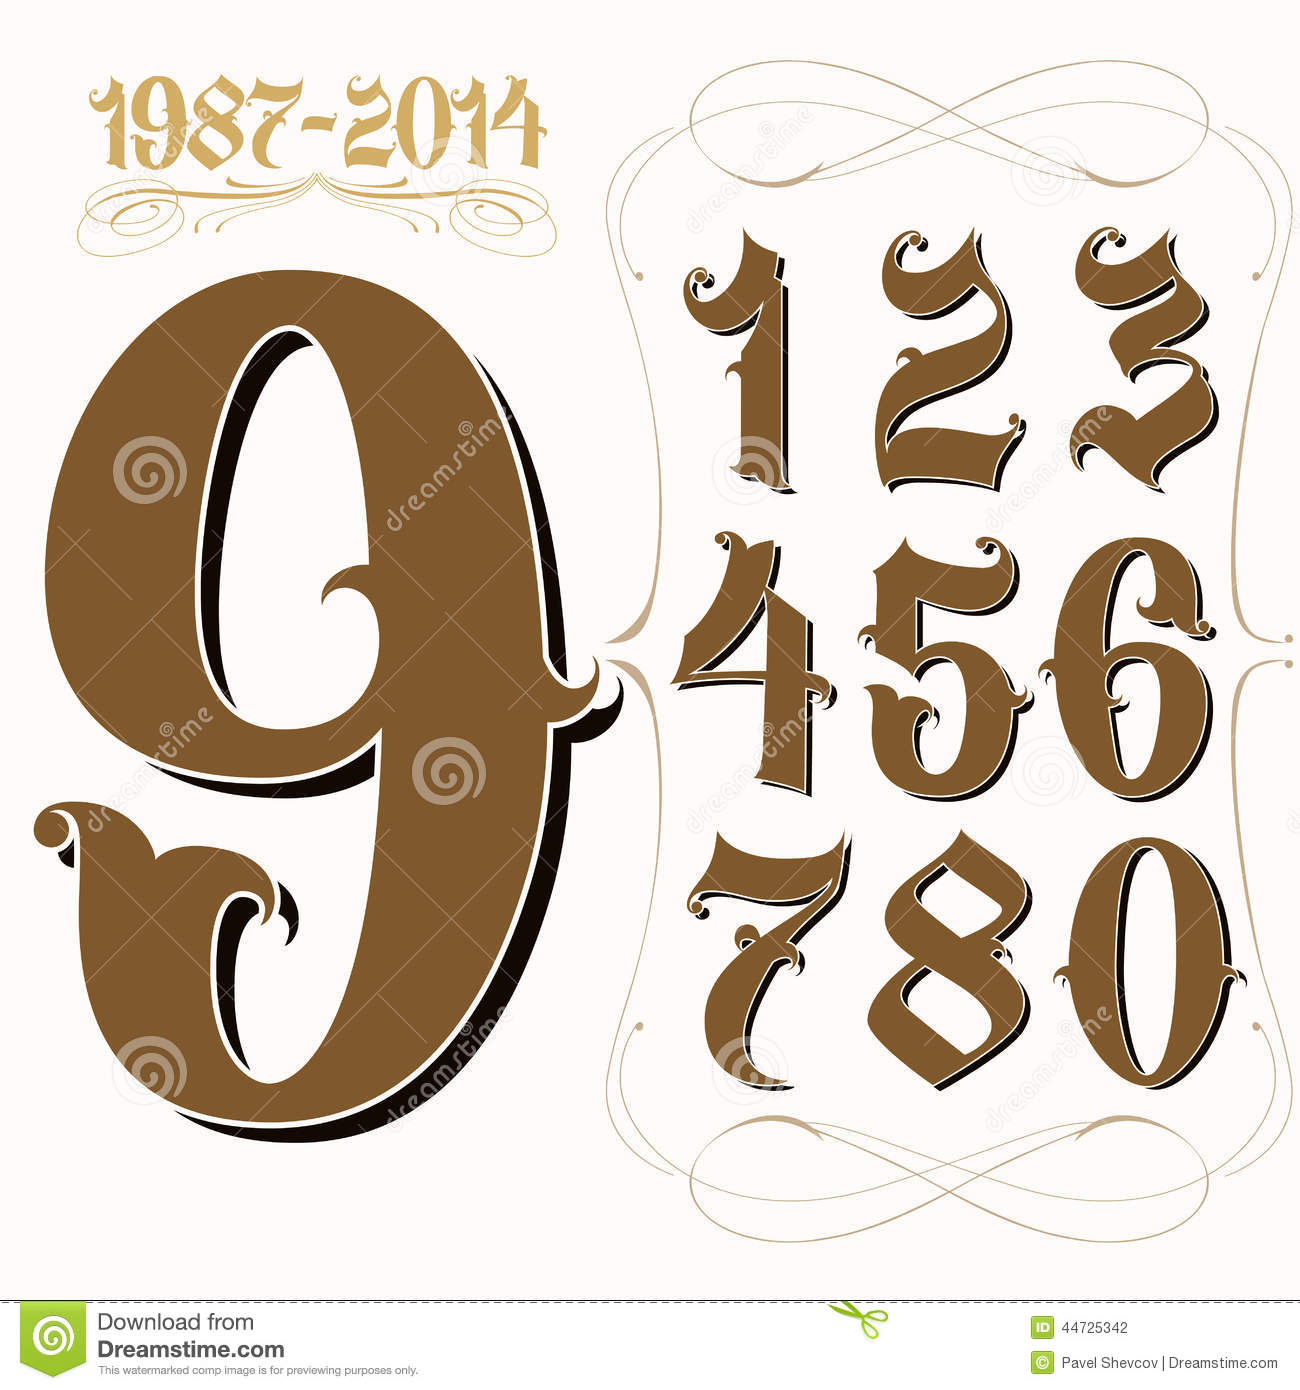 ART and TATTOO: Numbers